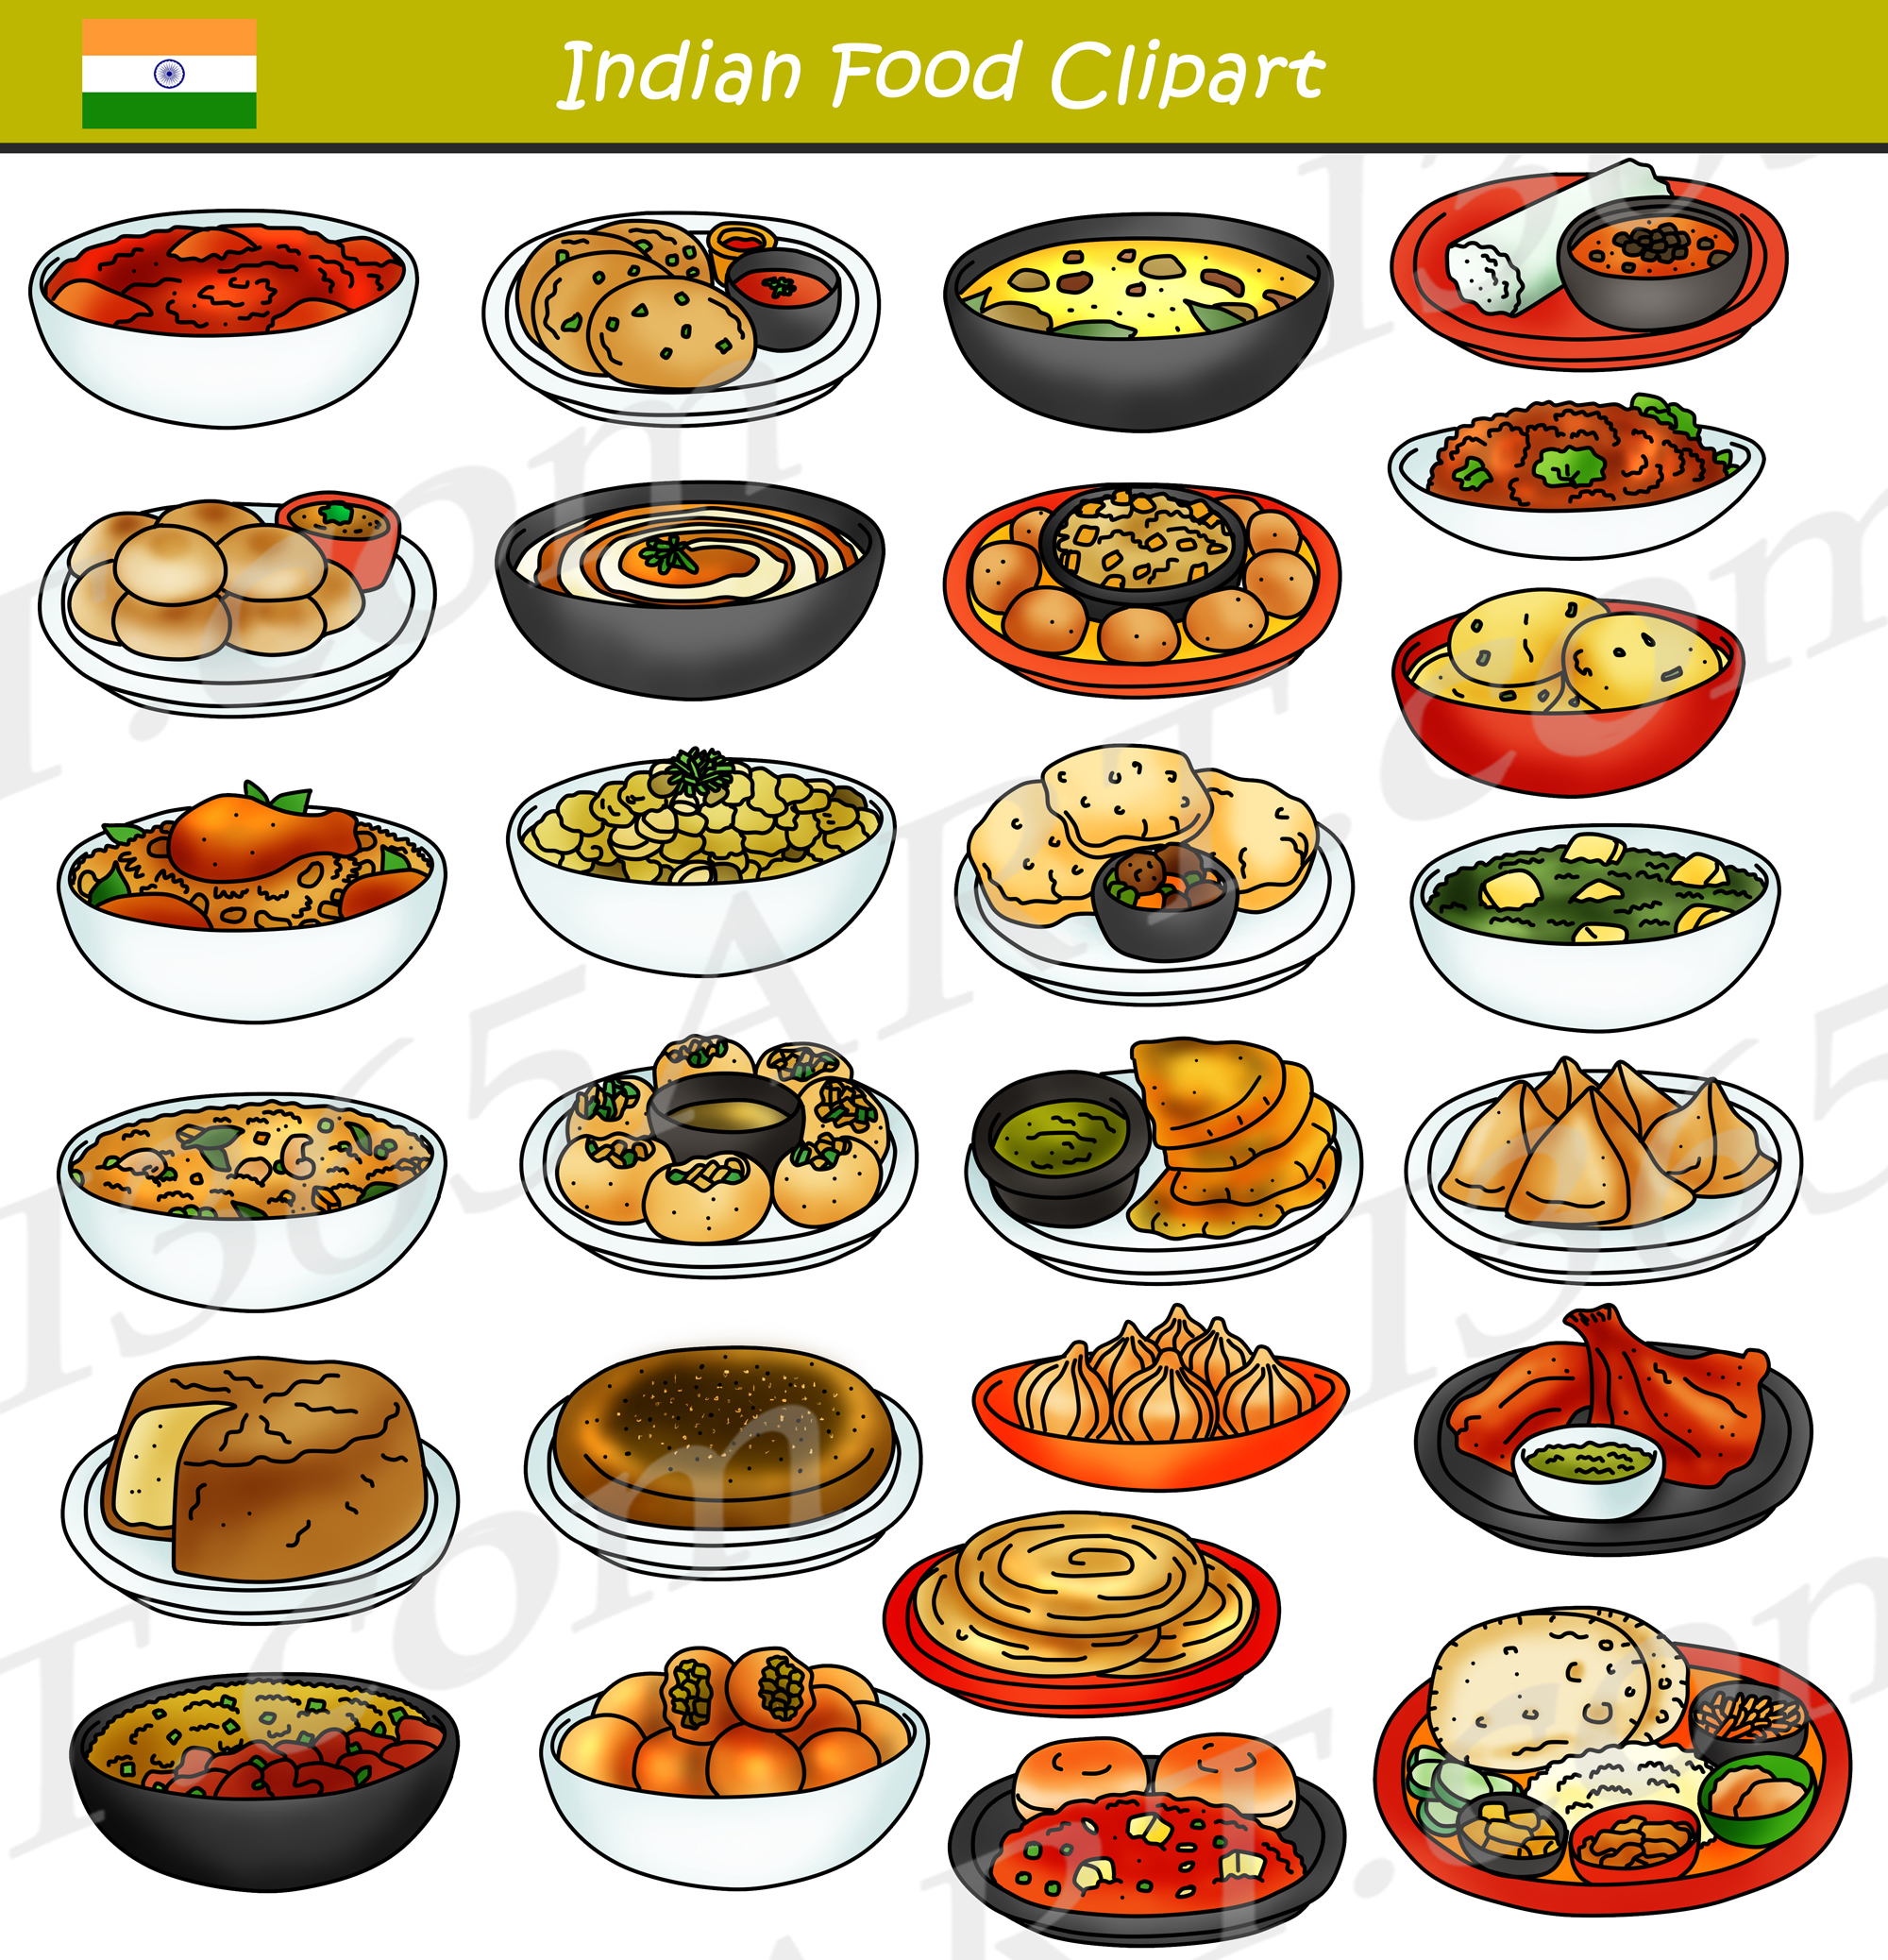 Food graphics clipart jpg royalty free library Indian Food Clipart Bundle Graphics jpg royalty free library